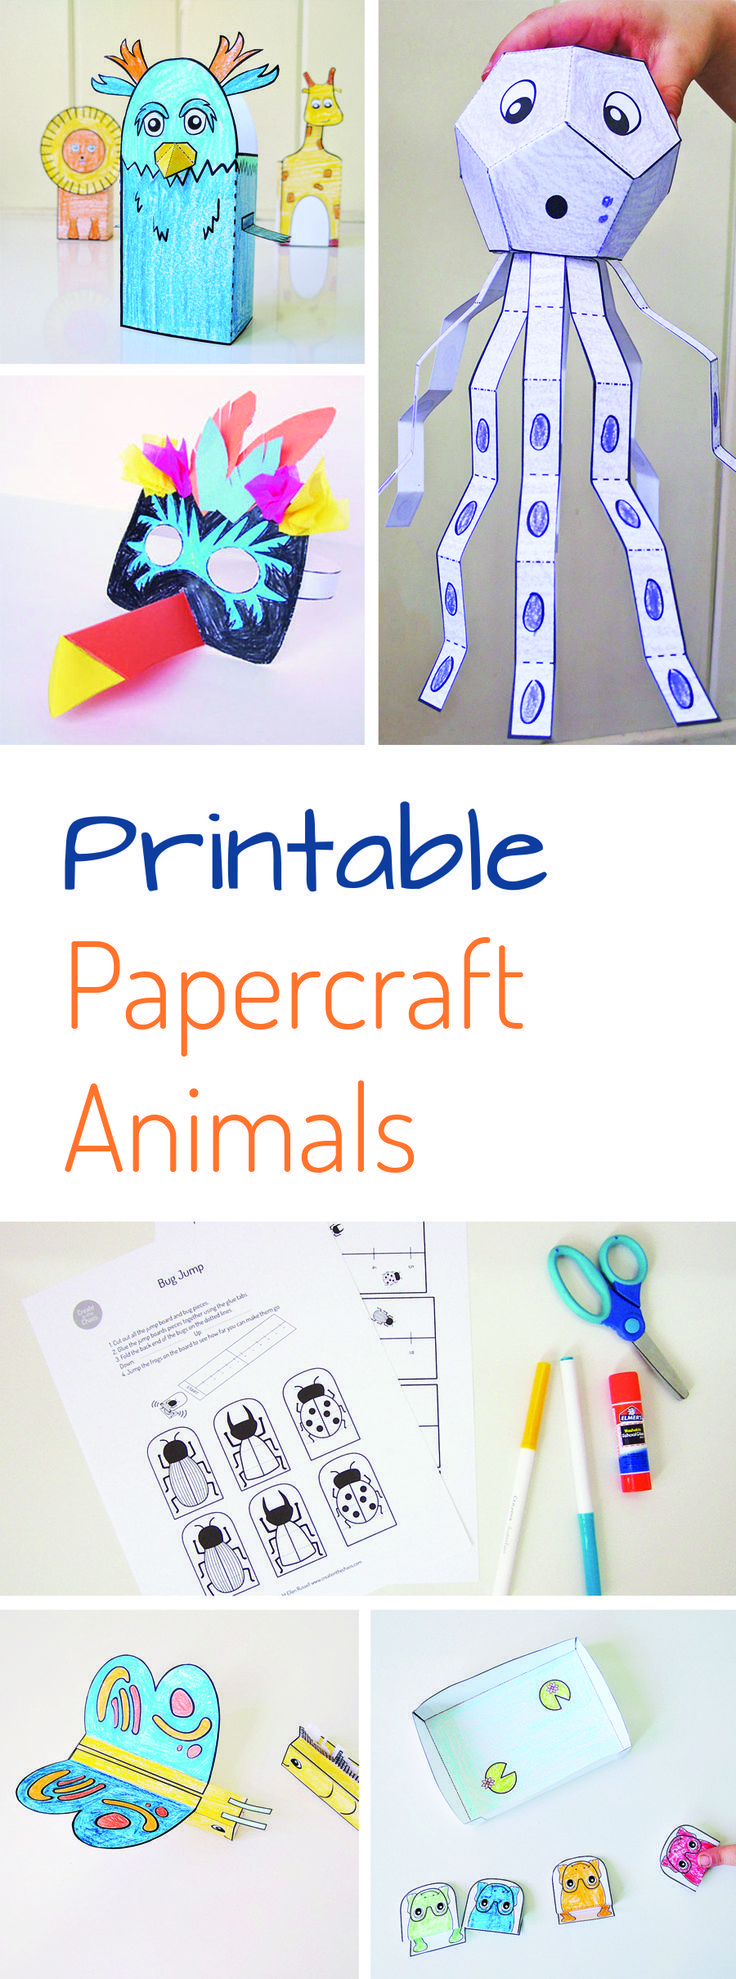 Such fun papercrafts for kids! Get out the scissors and glue and get ready for some quick, mess-free crafting fun with your kiddos. This 16 page PDF includes 3D printable animal papercrafts, printable masks, printable games, and more!